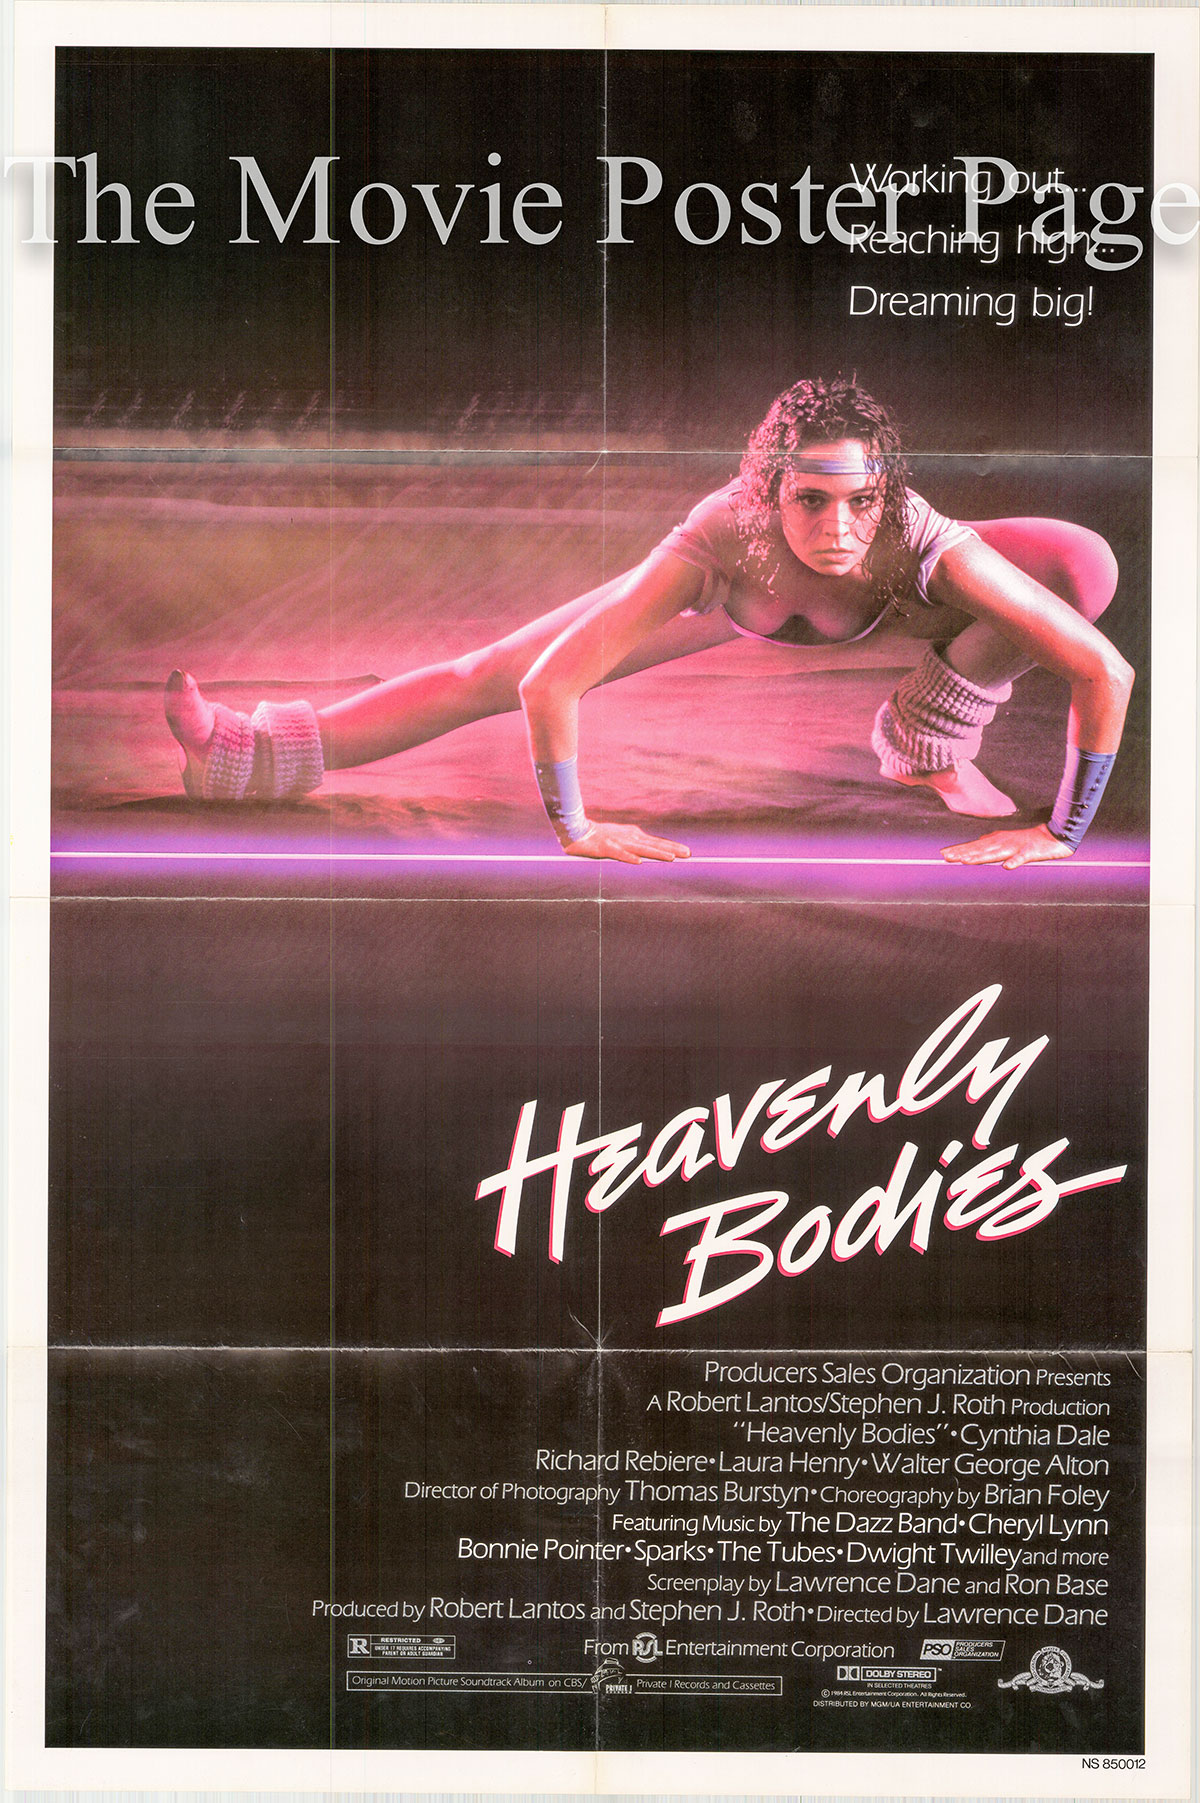 Pictured is a US one-sheet poster for the Lawrence Dane film Heavenly Bodies.